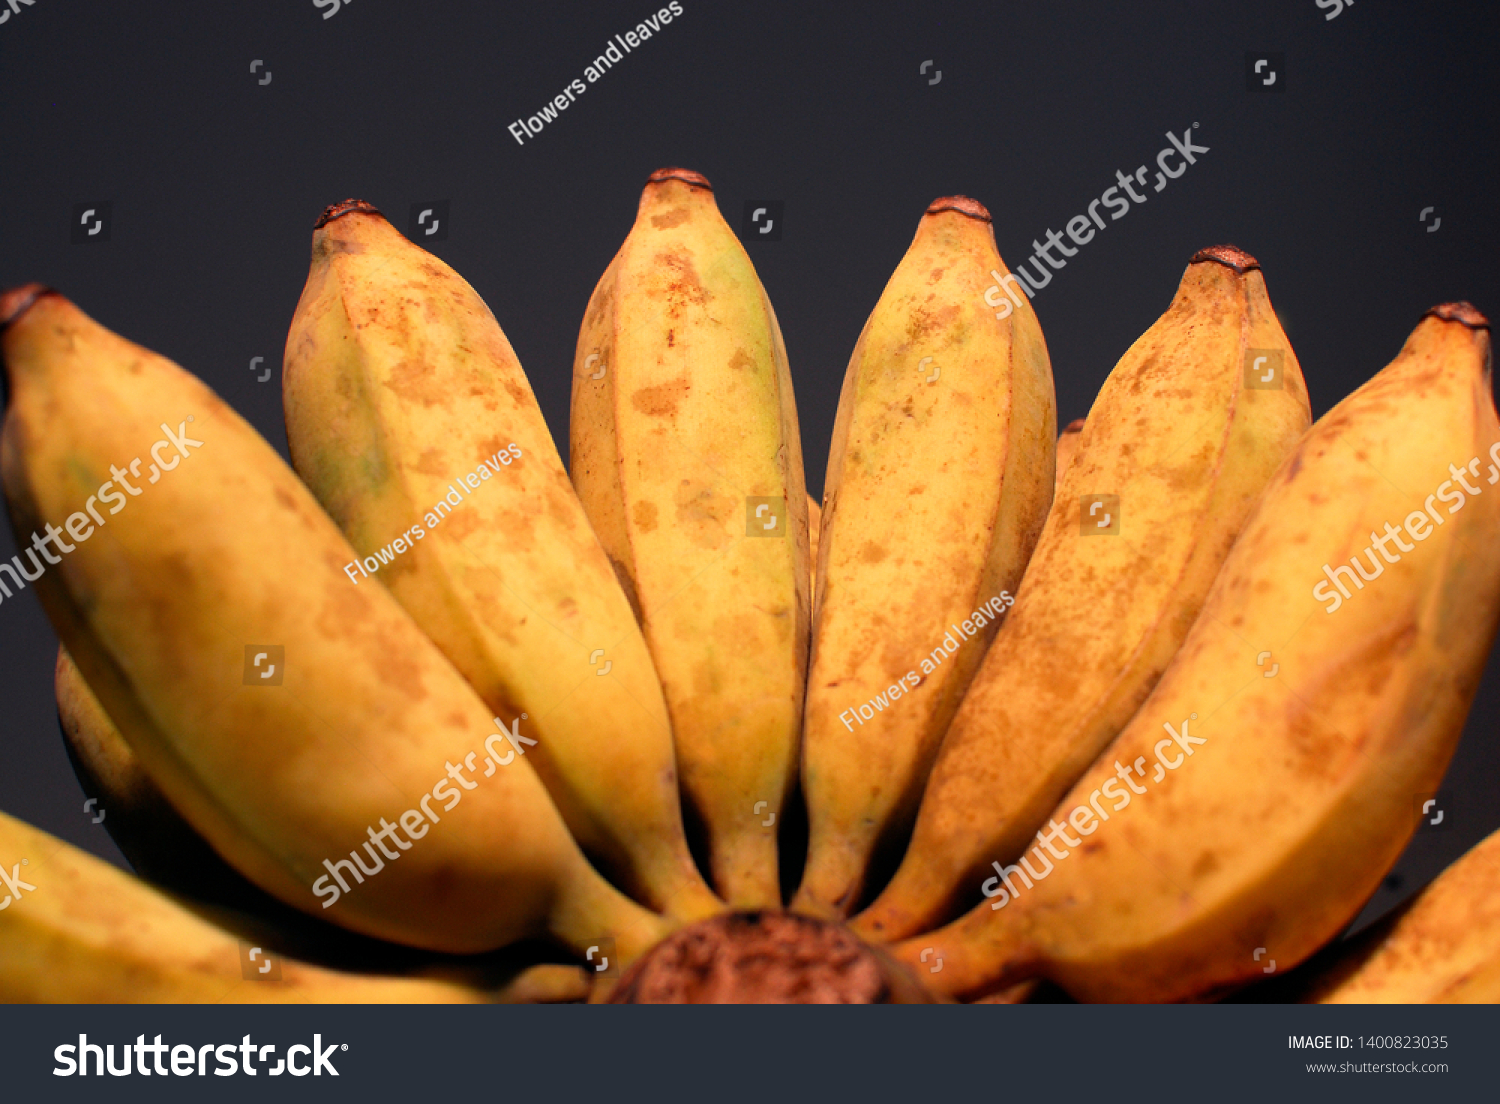 Ripe bananas are big and sweet fruits #1400823035